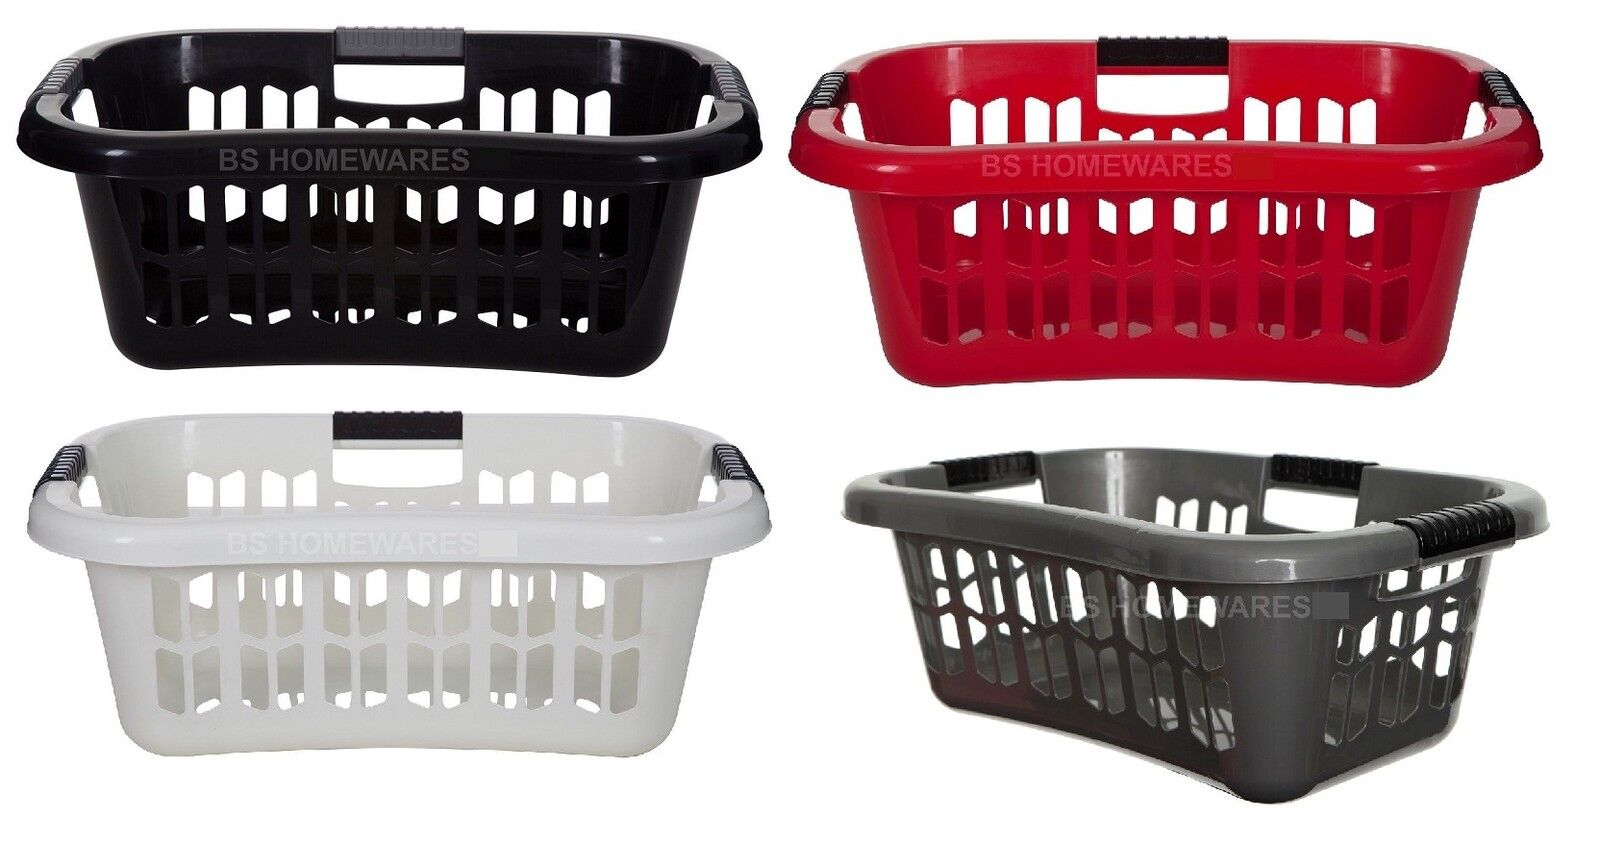 plastic large laundry basket easy grip hip washing up storage rectangular hamper ebay. Black Bedroom Furniture Sets. Home Design Ideas